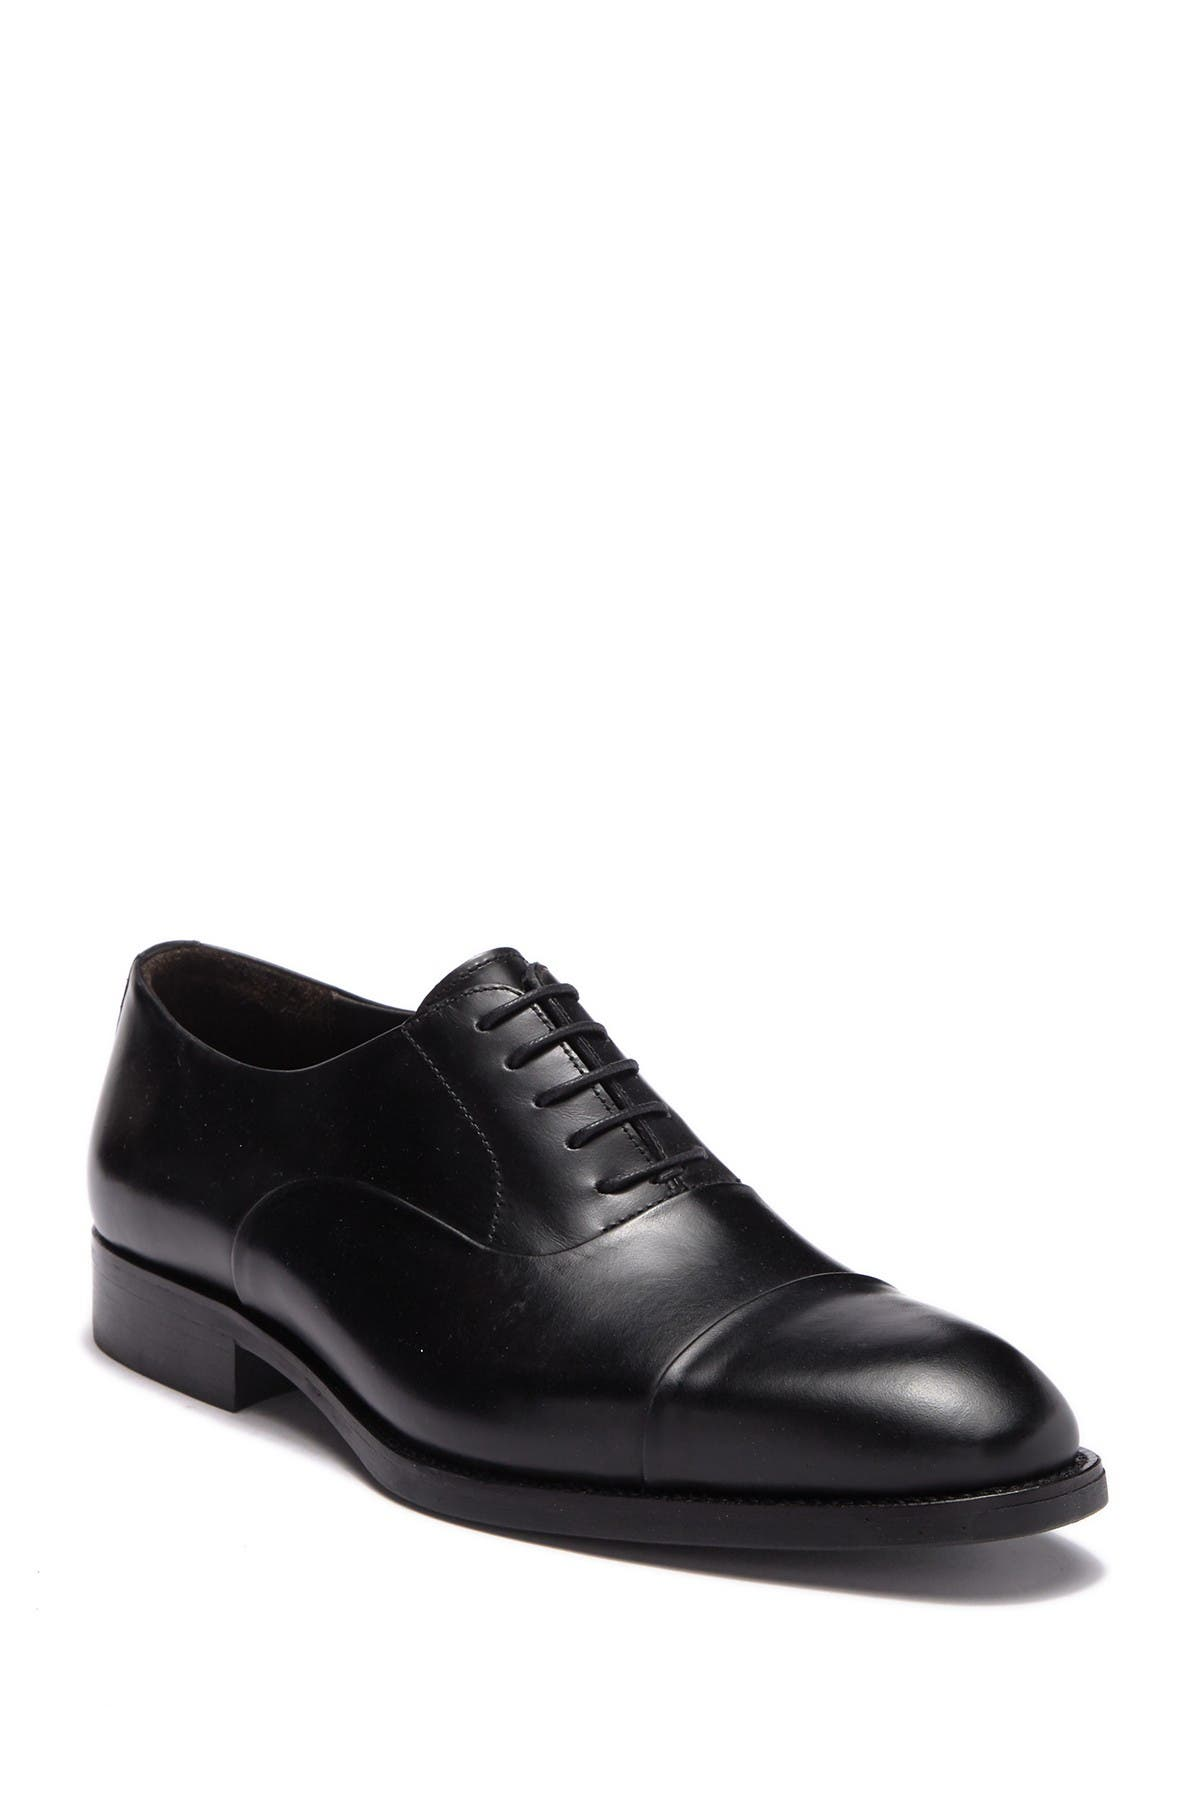 Image of To Boot New York Beragamo Leather Oxford